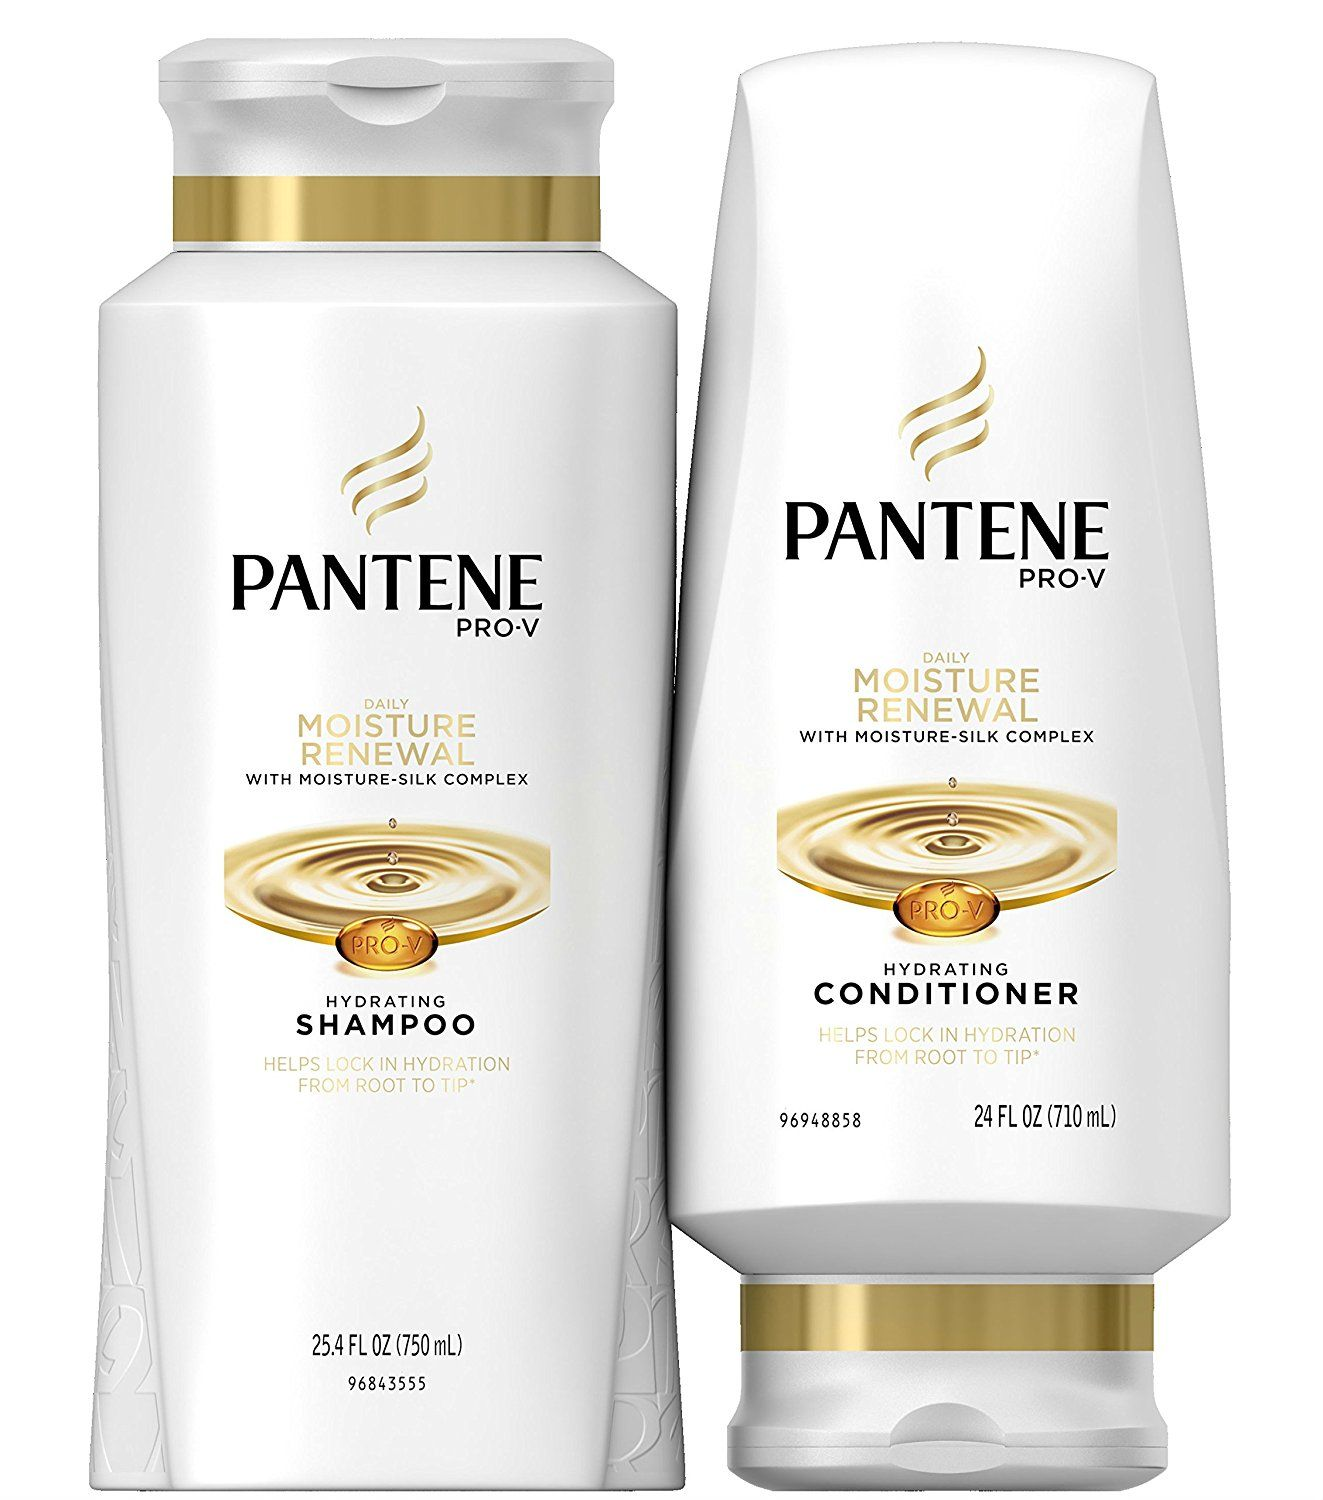 Pantene Pro V Daily Moisture Repair Shampoo Makes Your Hair Look Healthy And Shiny By Locking Hair Moisture And Dandruff Shampoo Anti Dandruff Shampoo Pantene